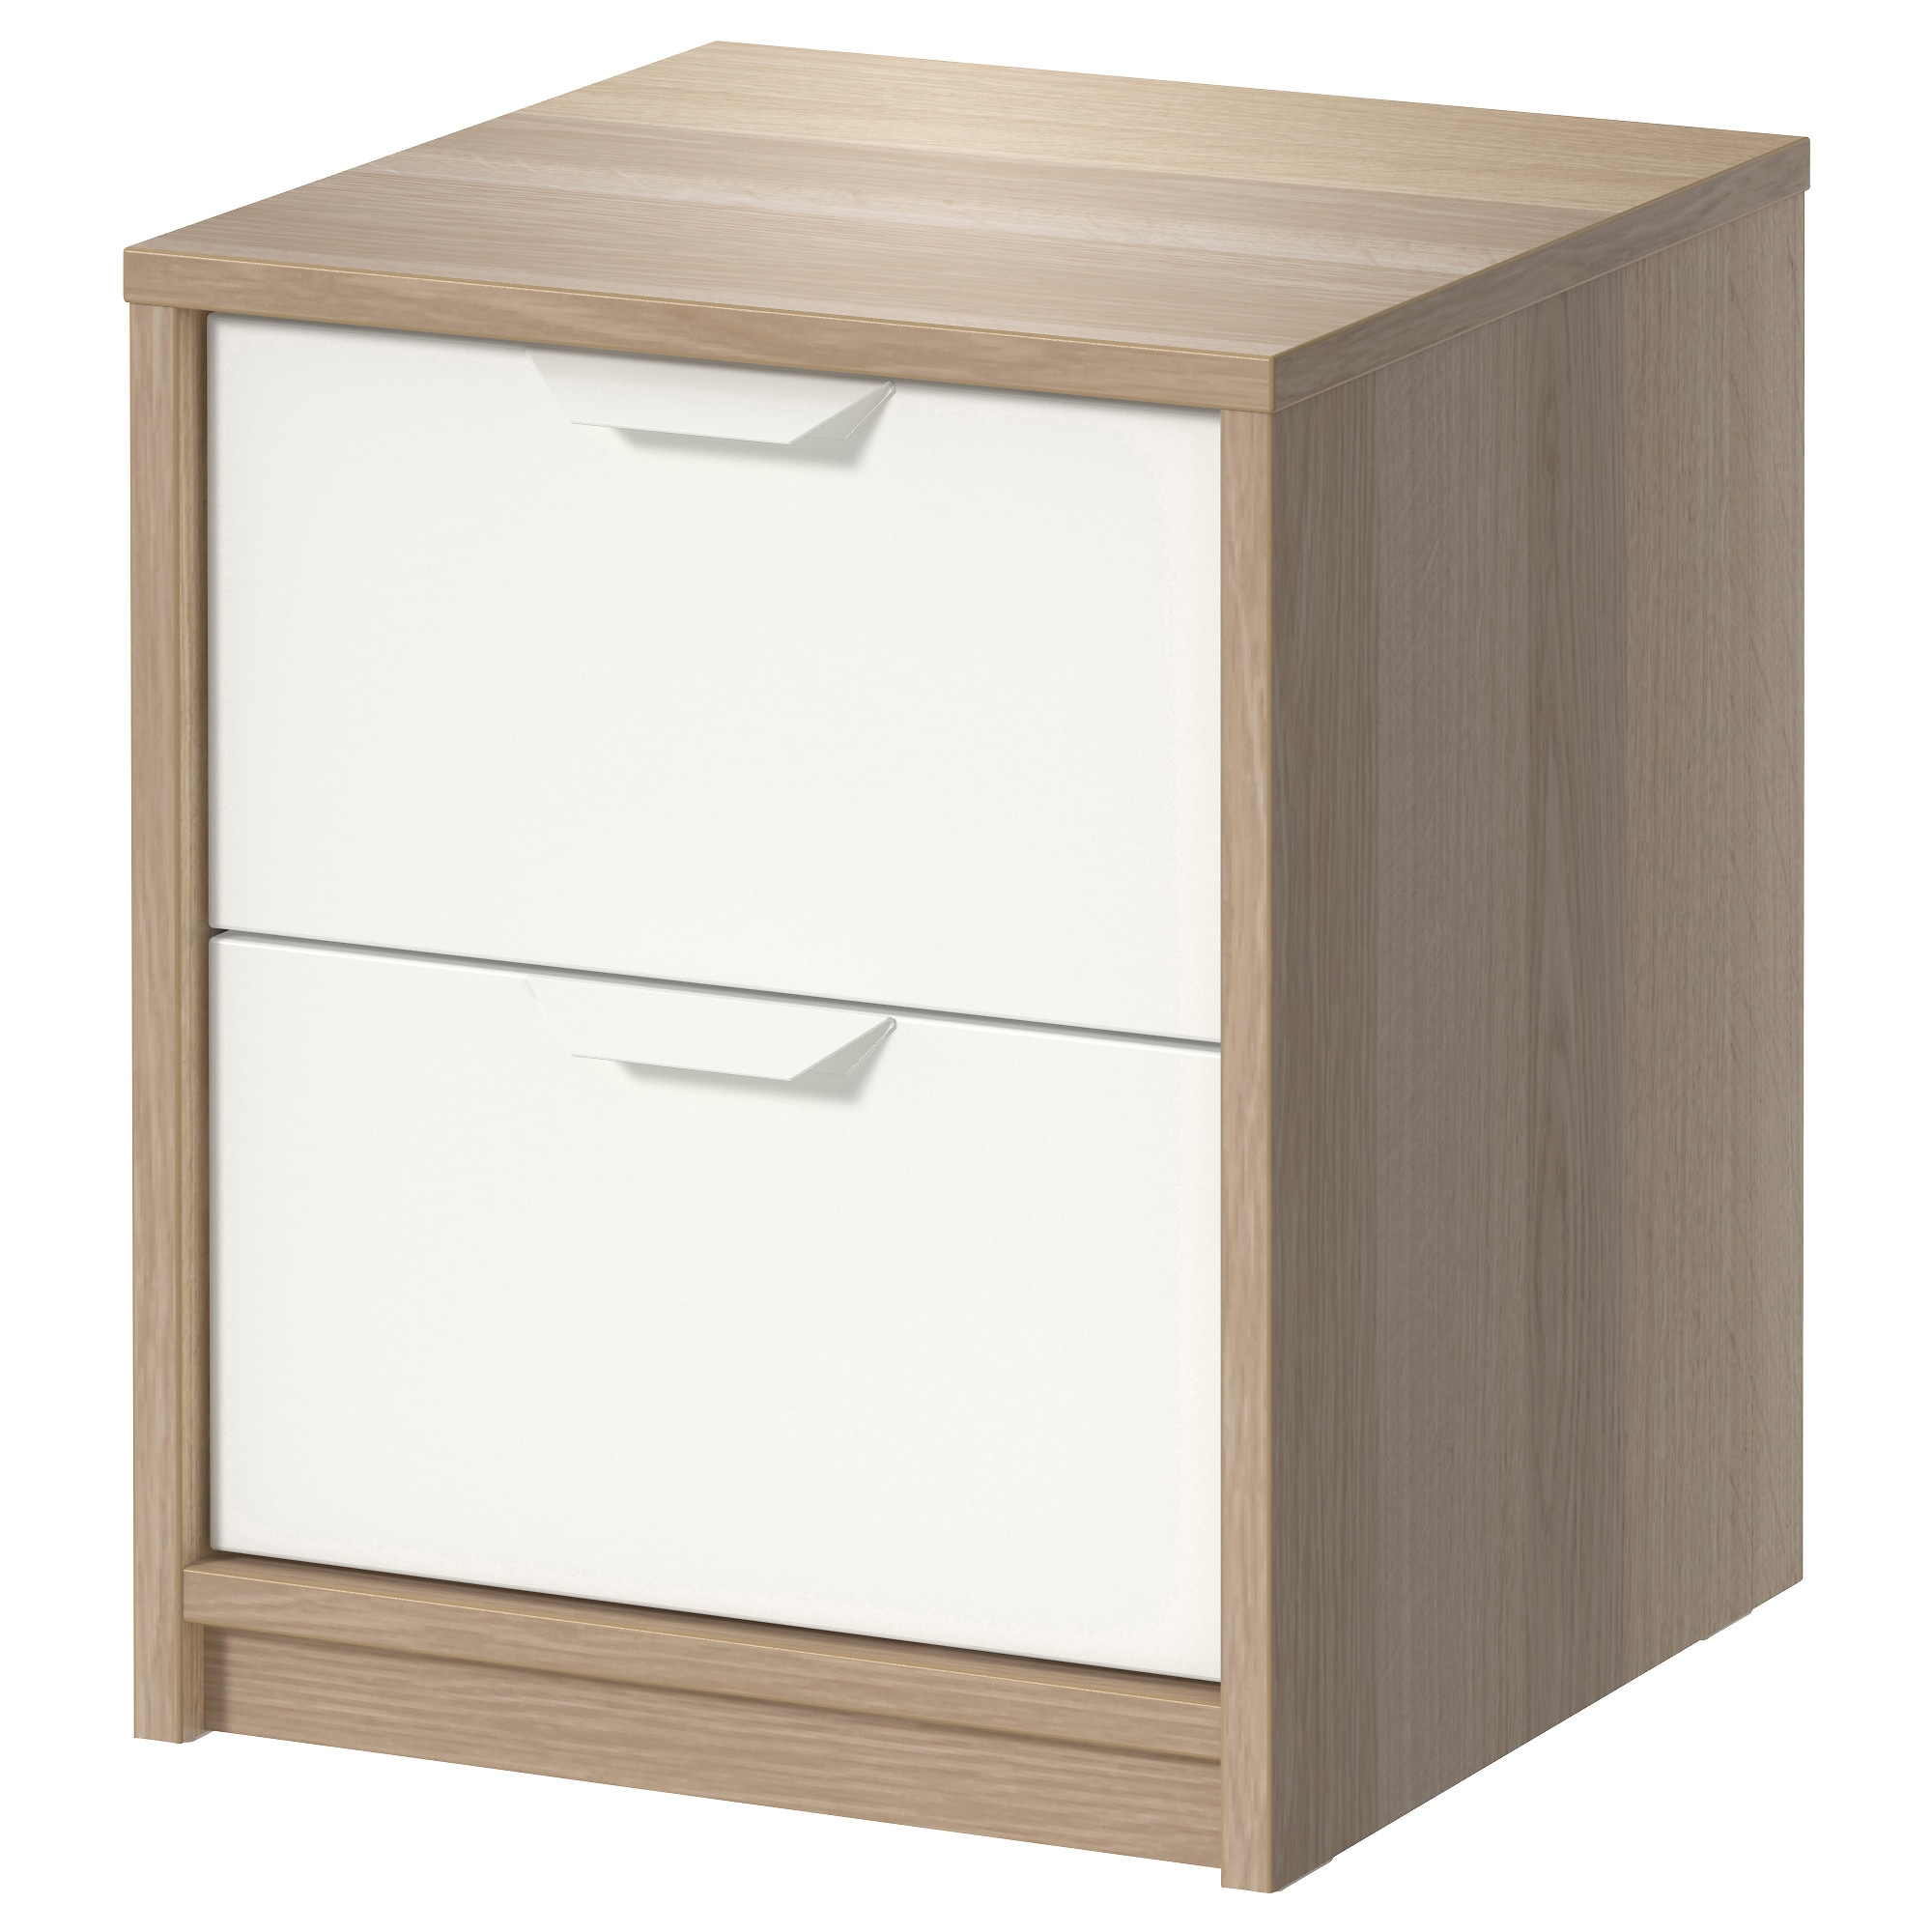 Askvoll 2 Drawer Chest White Stained Oak Effect Width 16 1